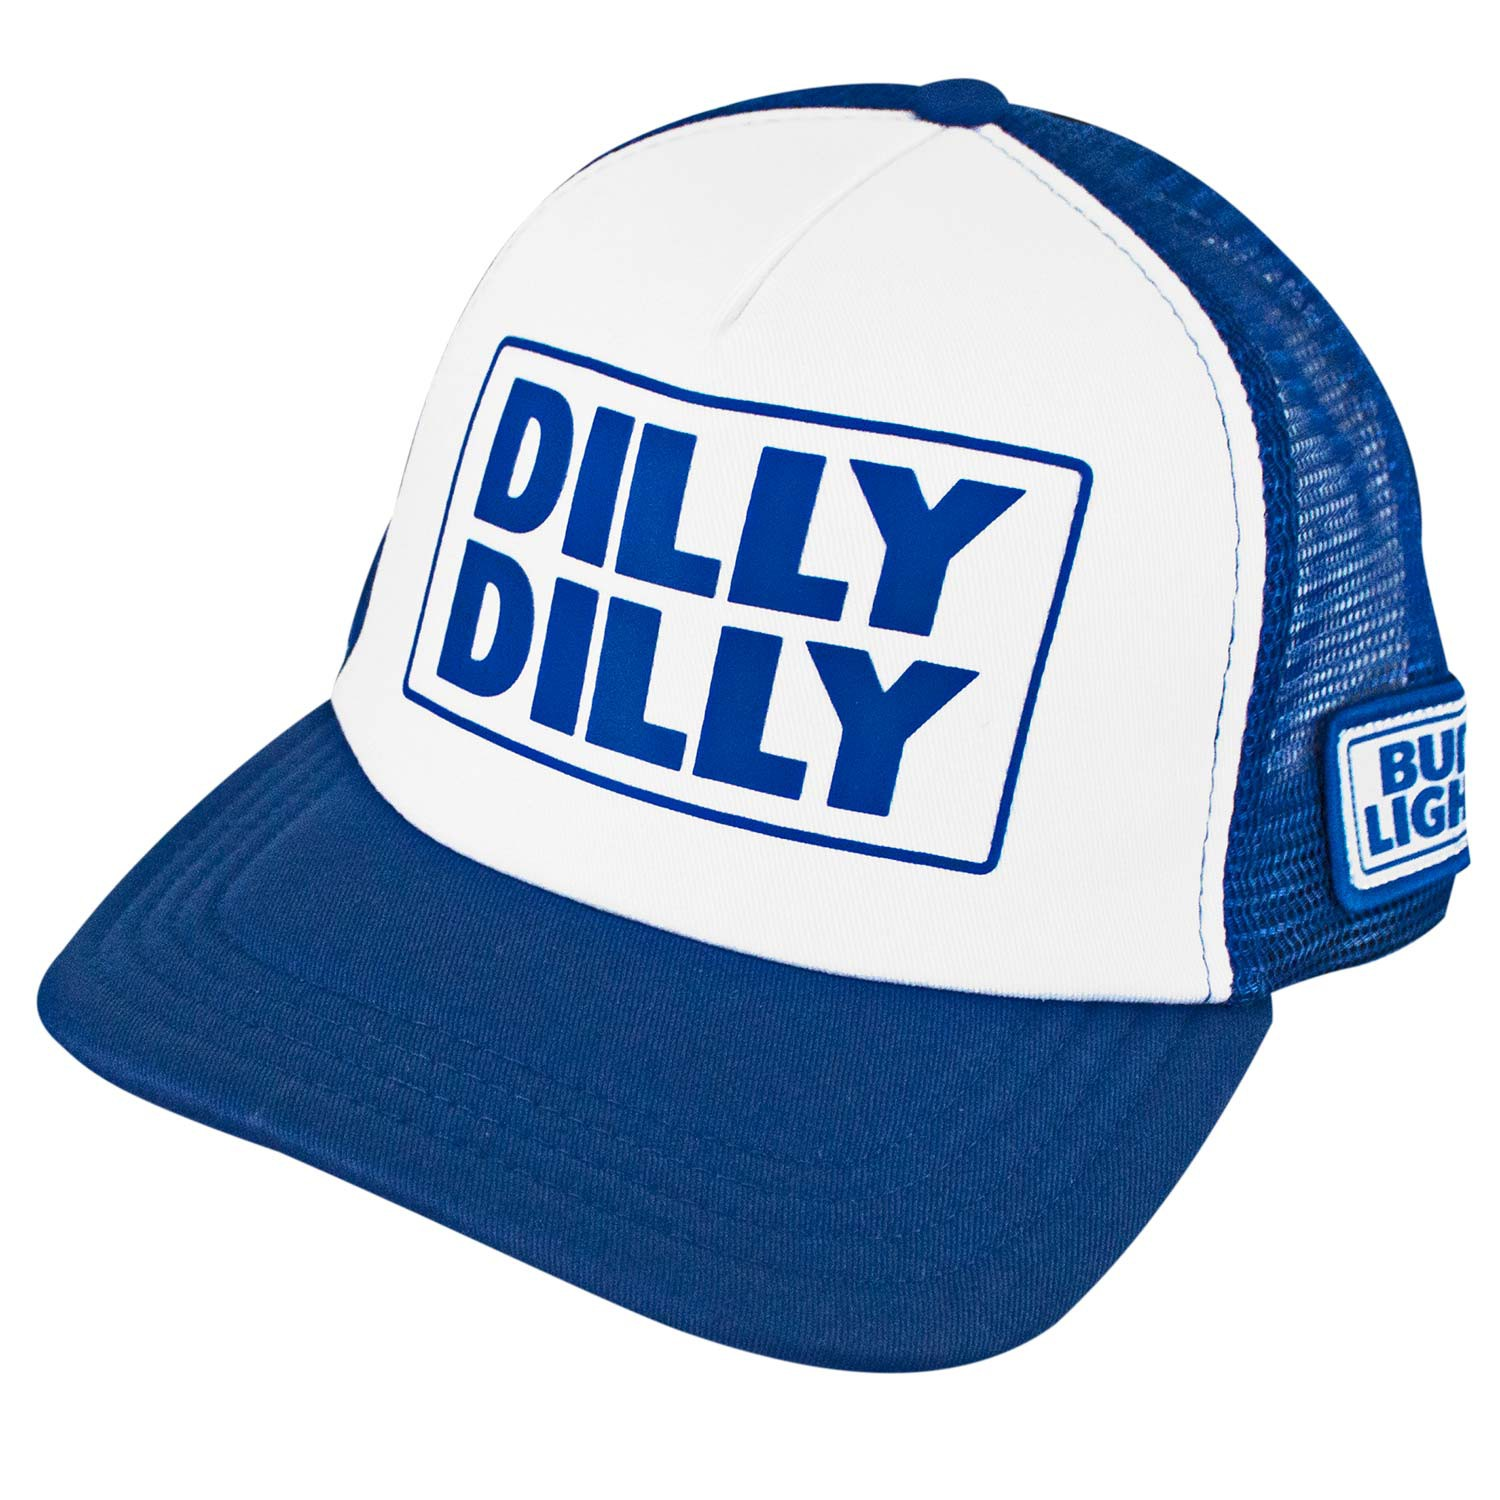 Bud Light Dilly Dilly Trucker Hat